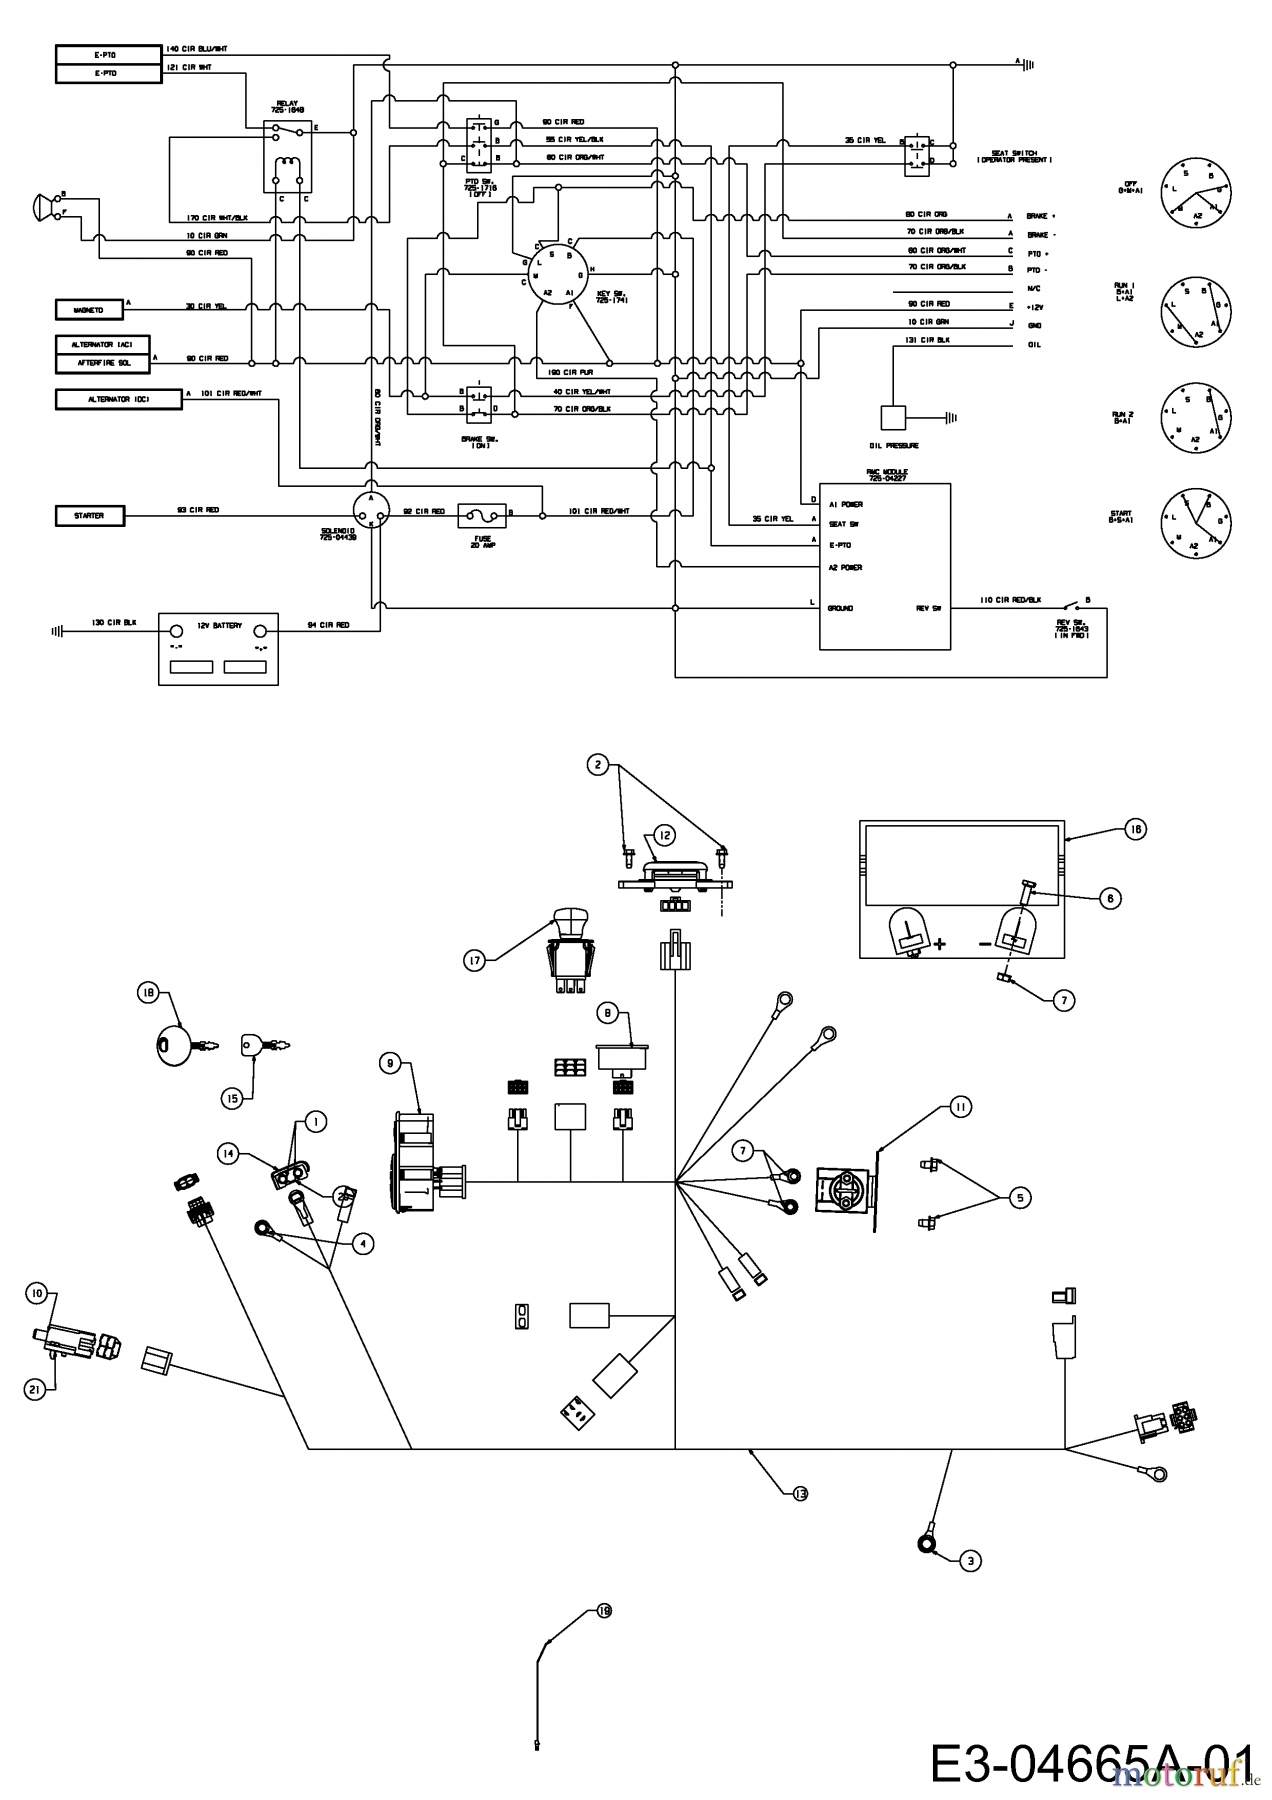 Cub Cadet Engine Schematics